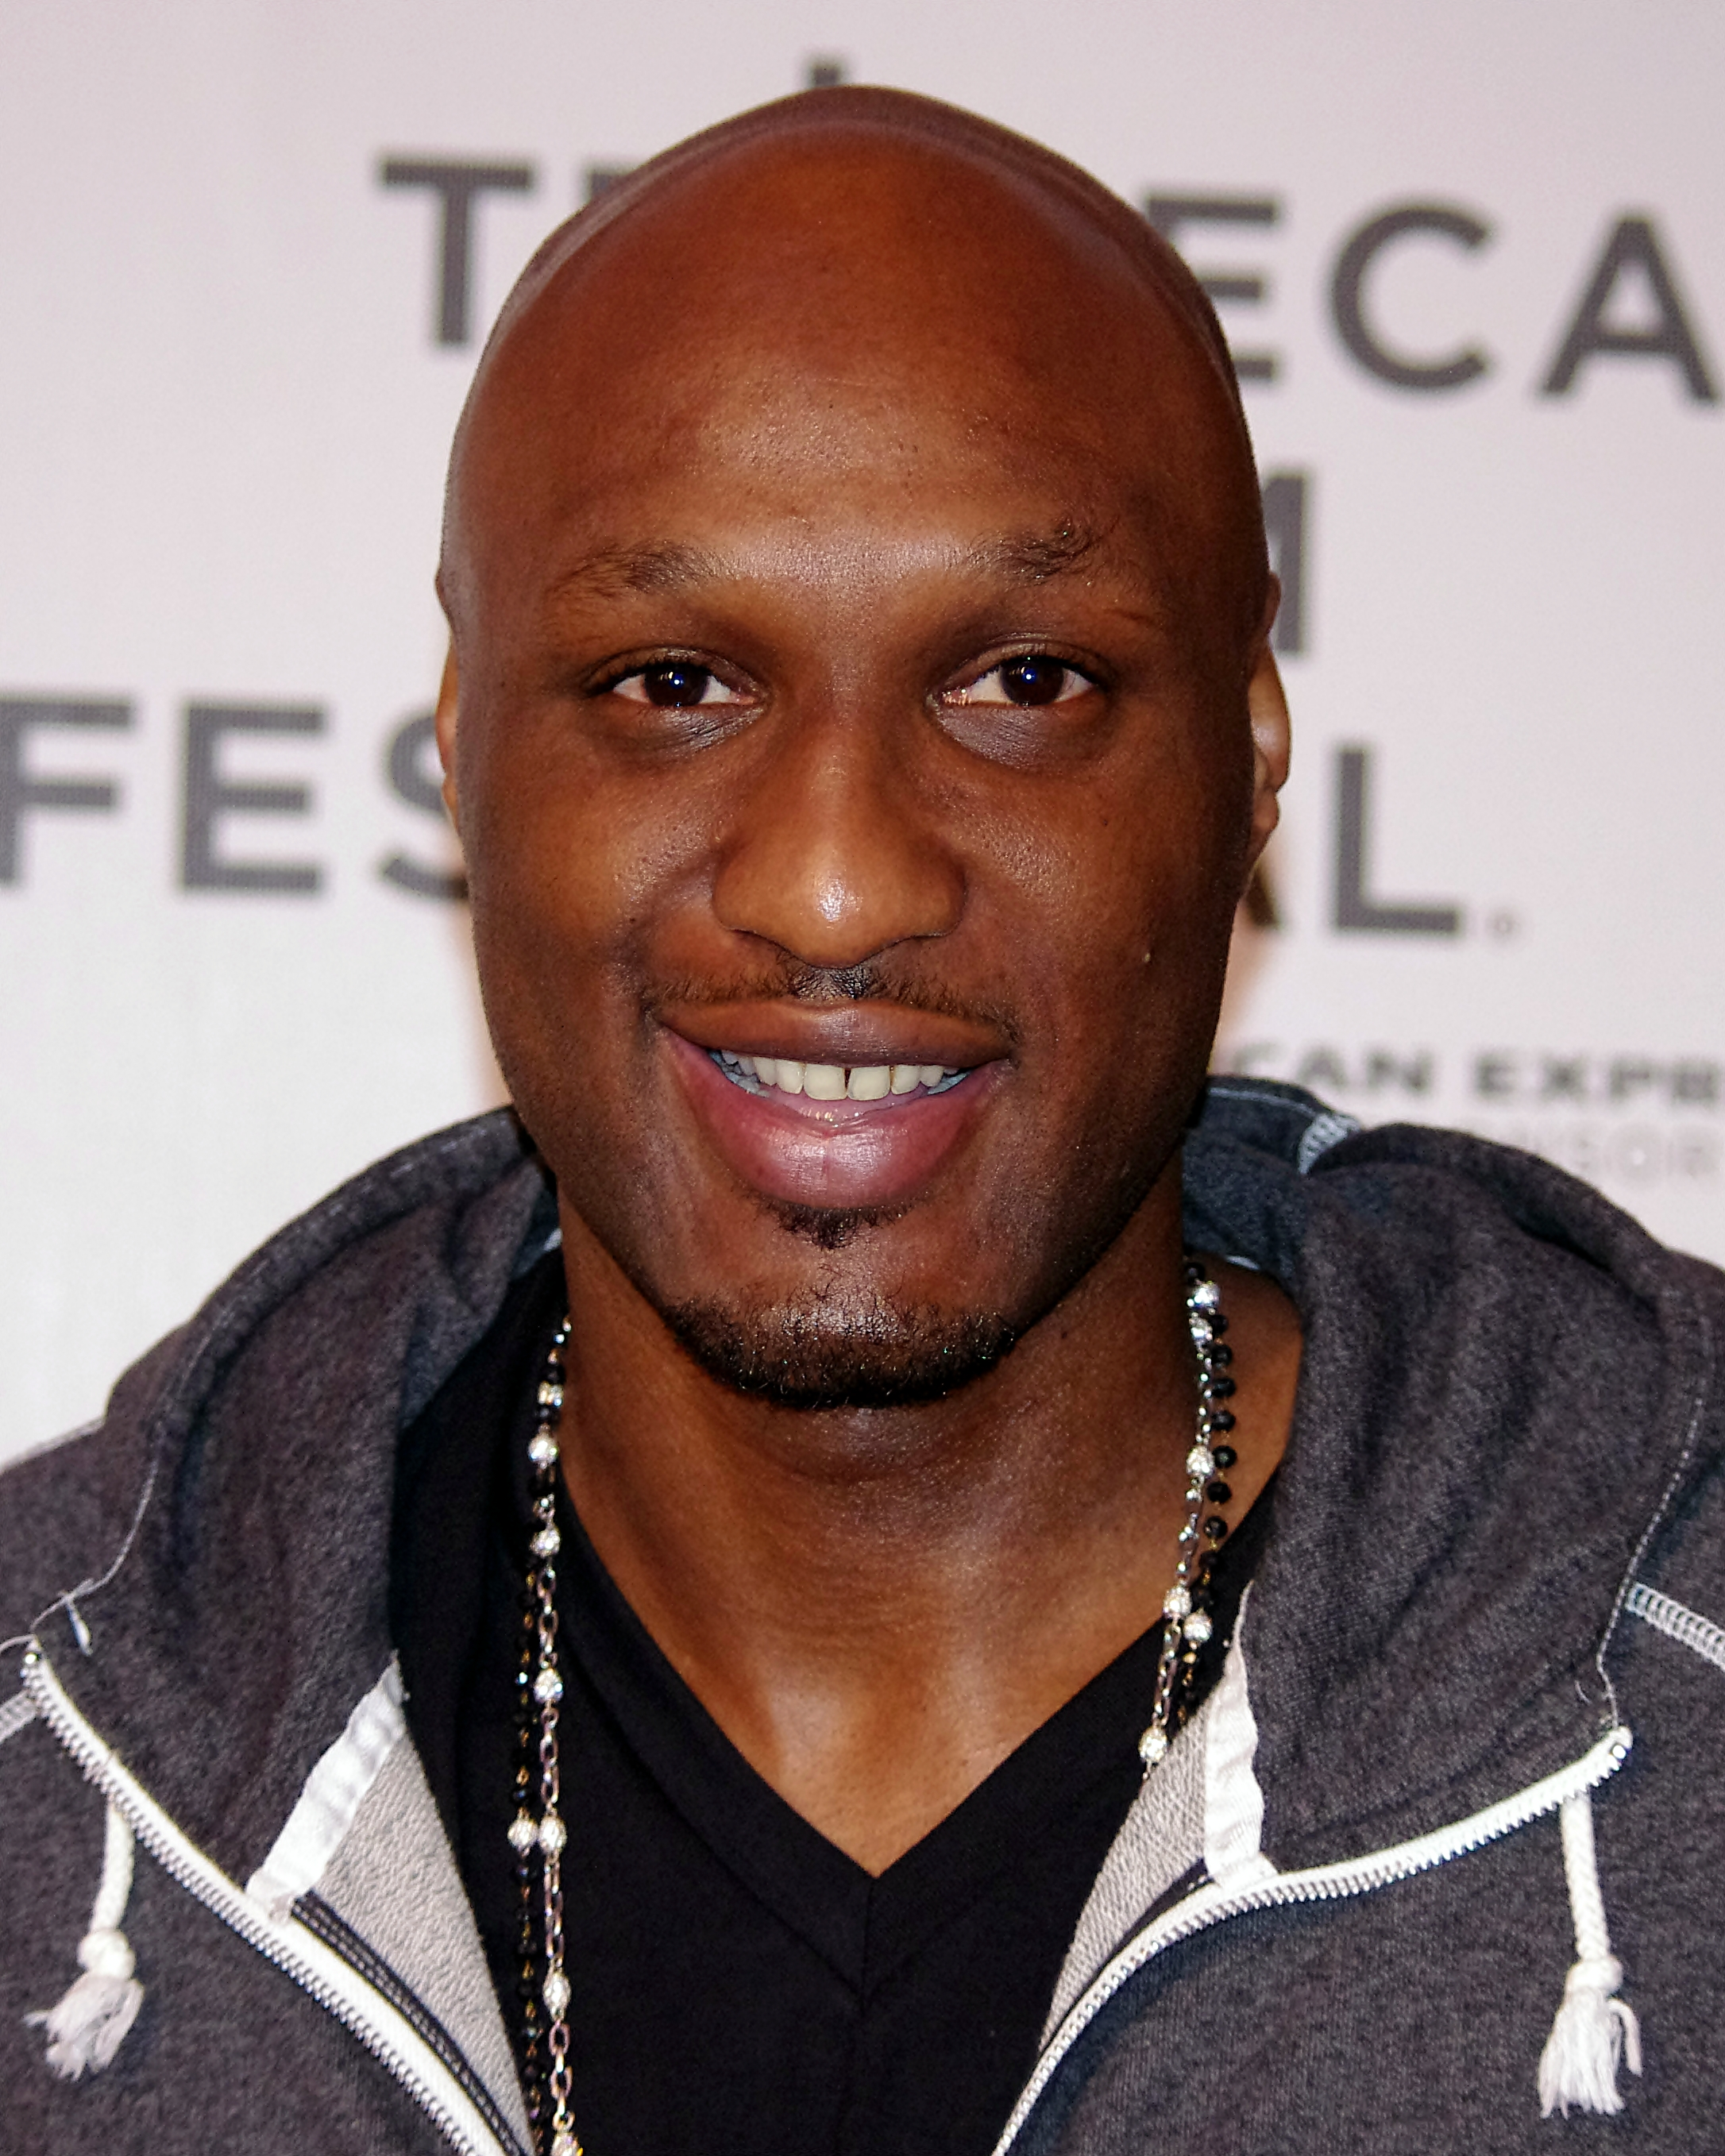 Lamar Odom Had Drugs in His System and Has Brain Damage